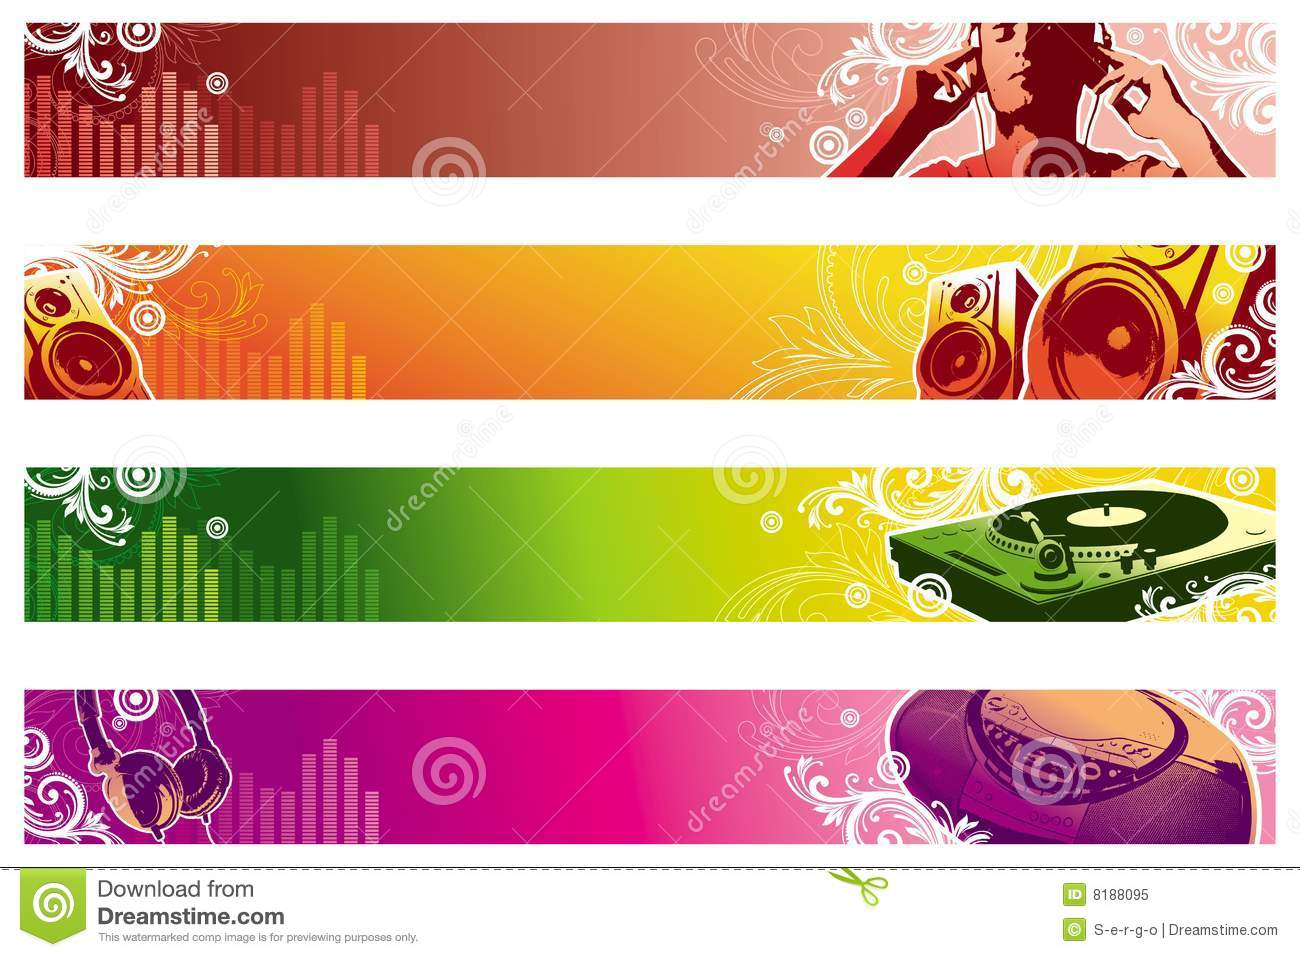 Music Web Banners Royalty Free Stock Photo - Image: 8188095